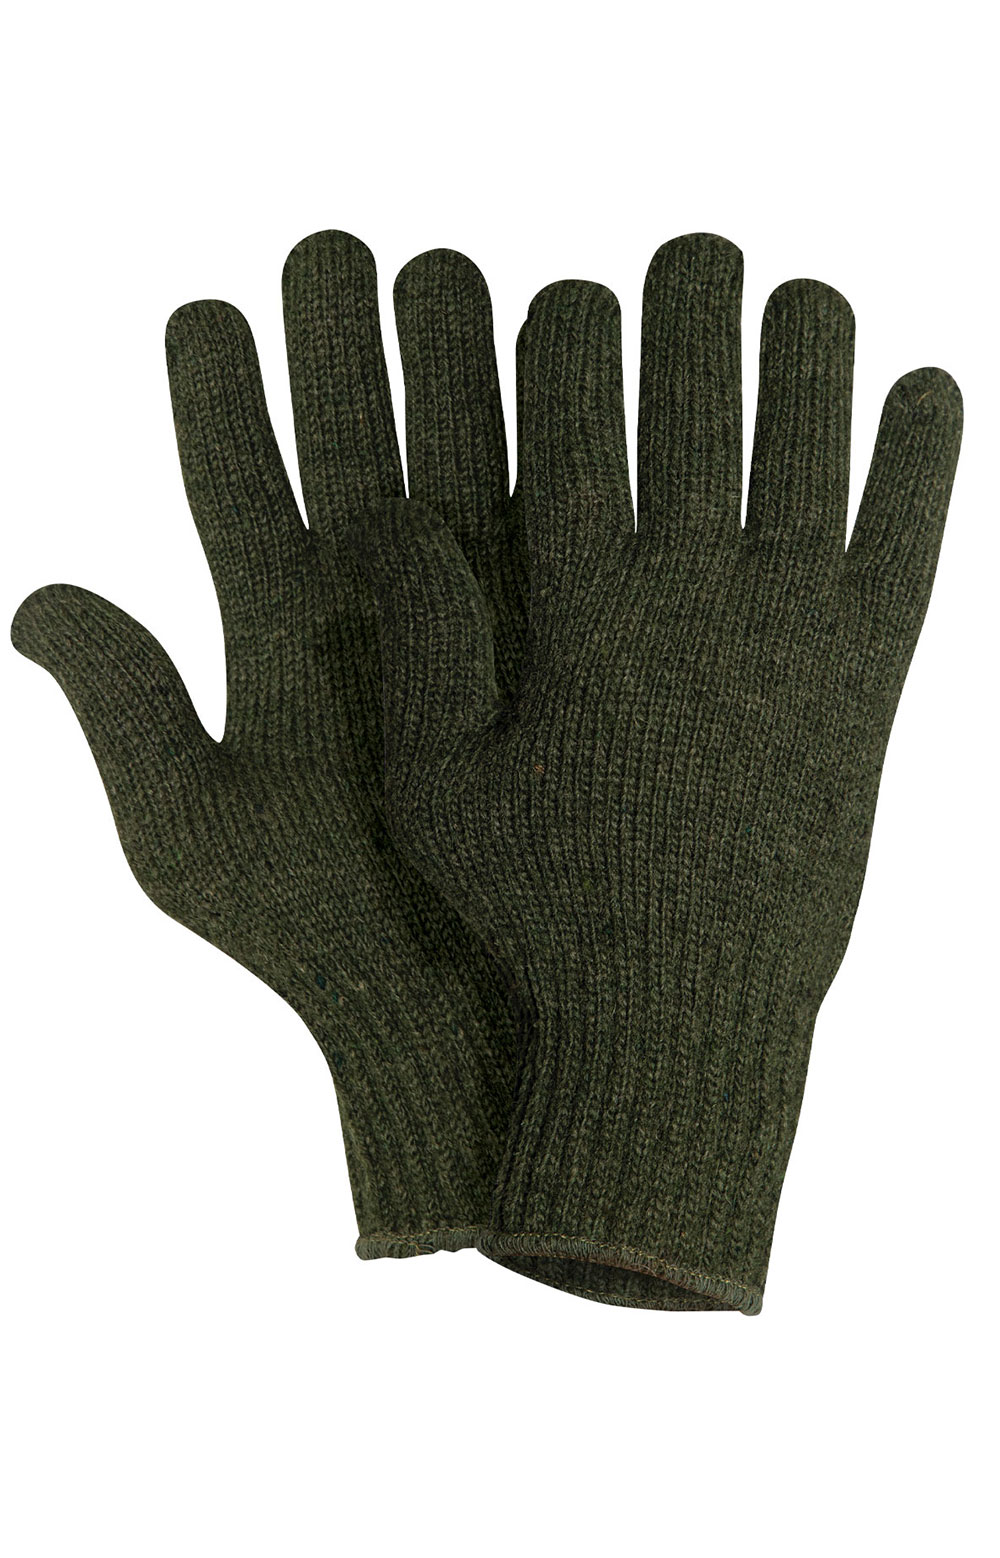 (8218) Wool Glove Liners - Olive Drab 4